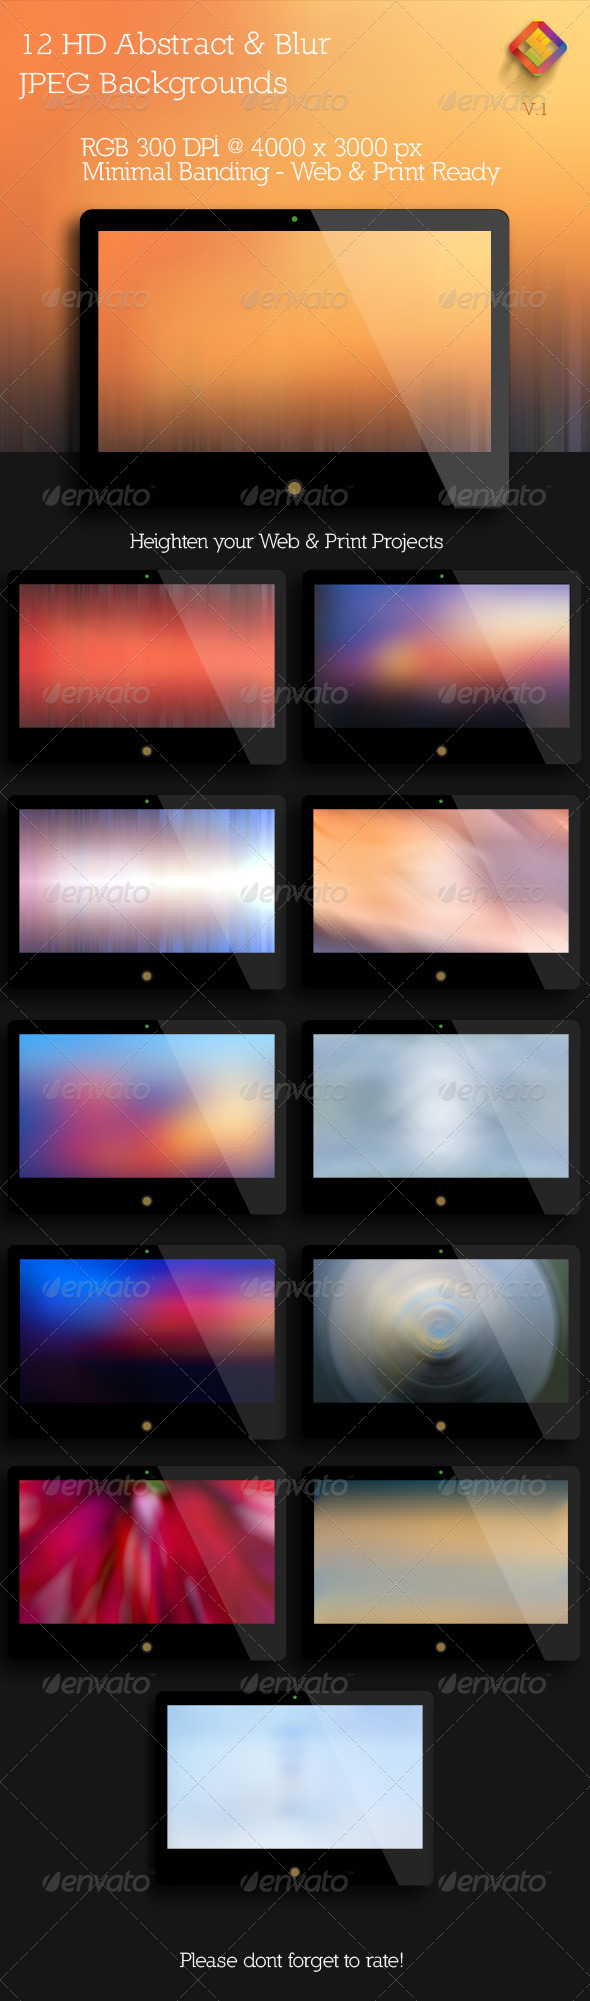 HD Abstract and  Blur Backgrounds V.1 - Abstract Backgrounds